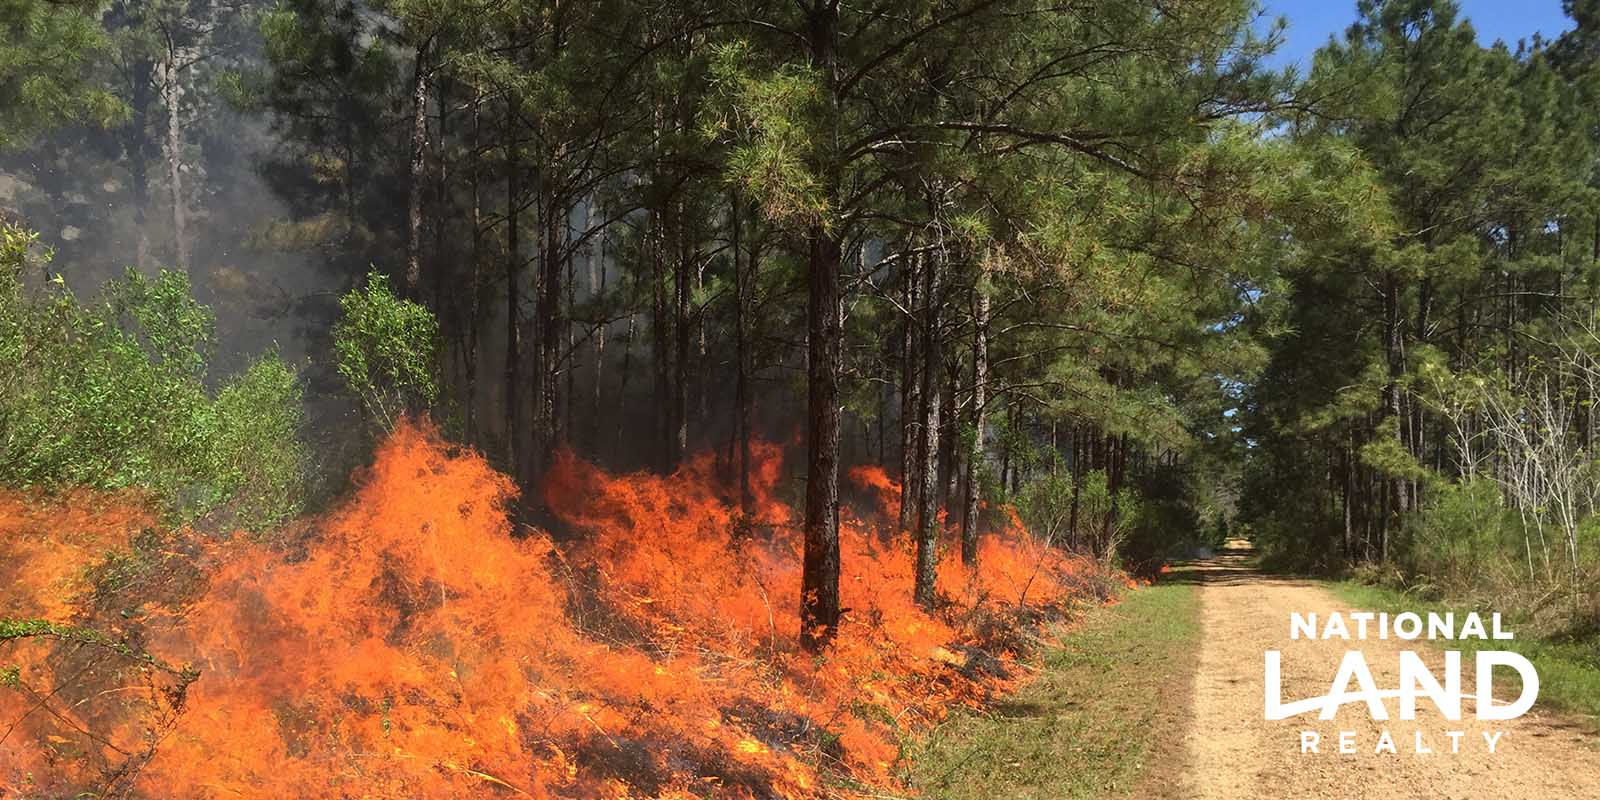 A controlled fire or prescribed burning